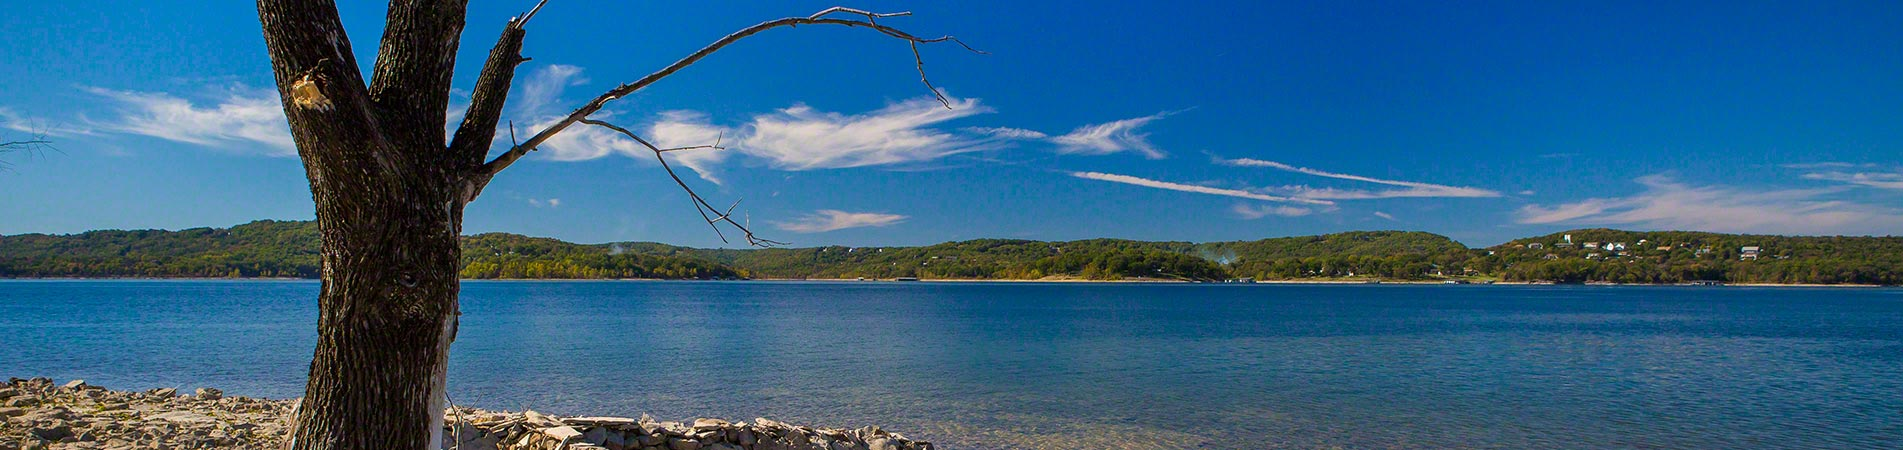 Excellent photograph taken from the shore of the Table Rock Lake in Branson, MO.